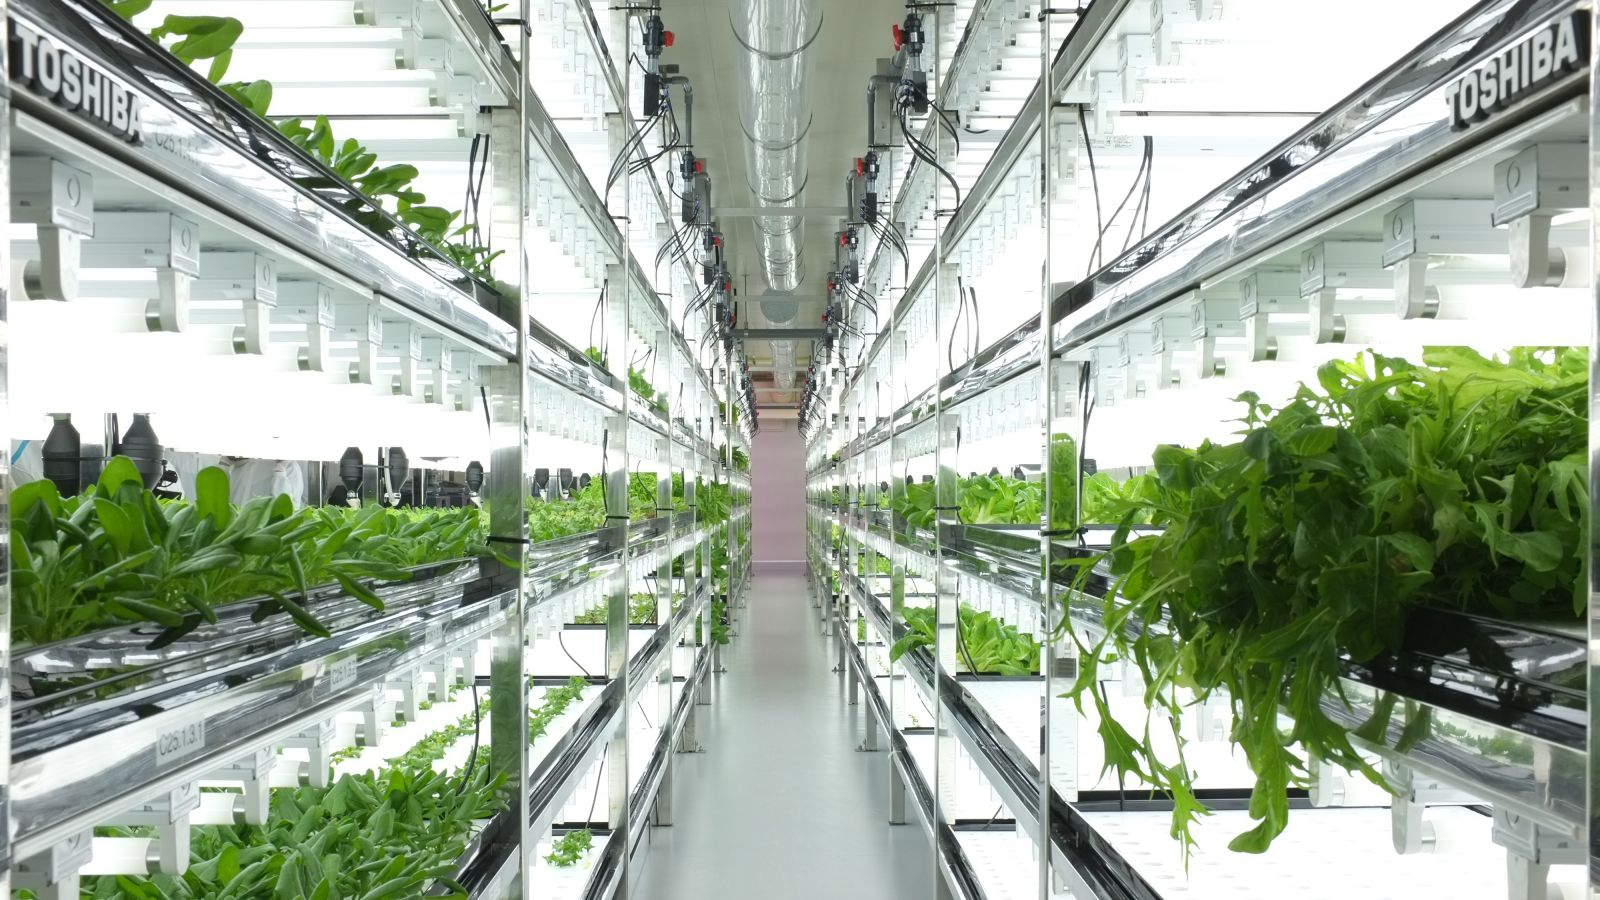 1 growtruck, also known as a farmers market in a box, can grow over 5,000 heads of leafy greens